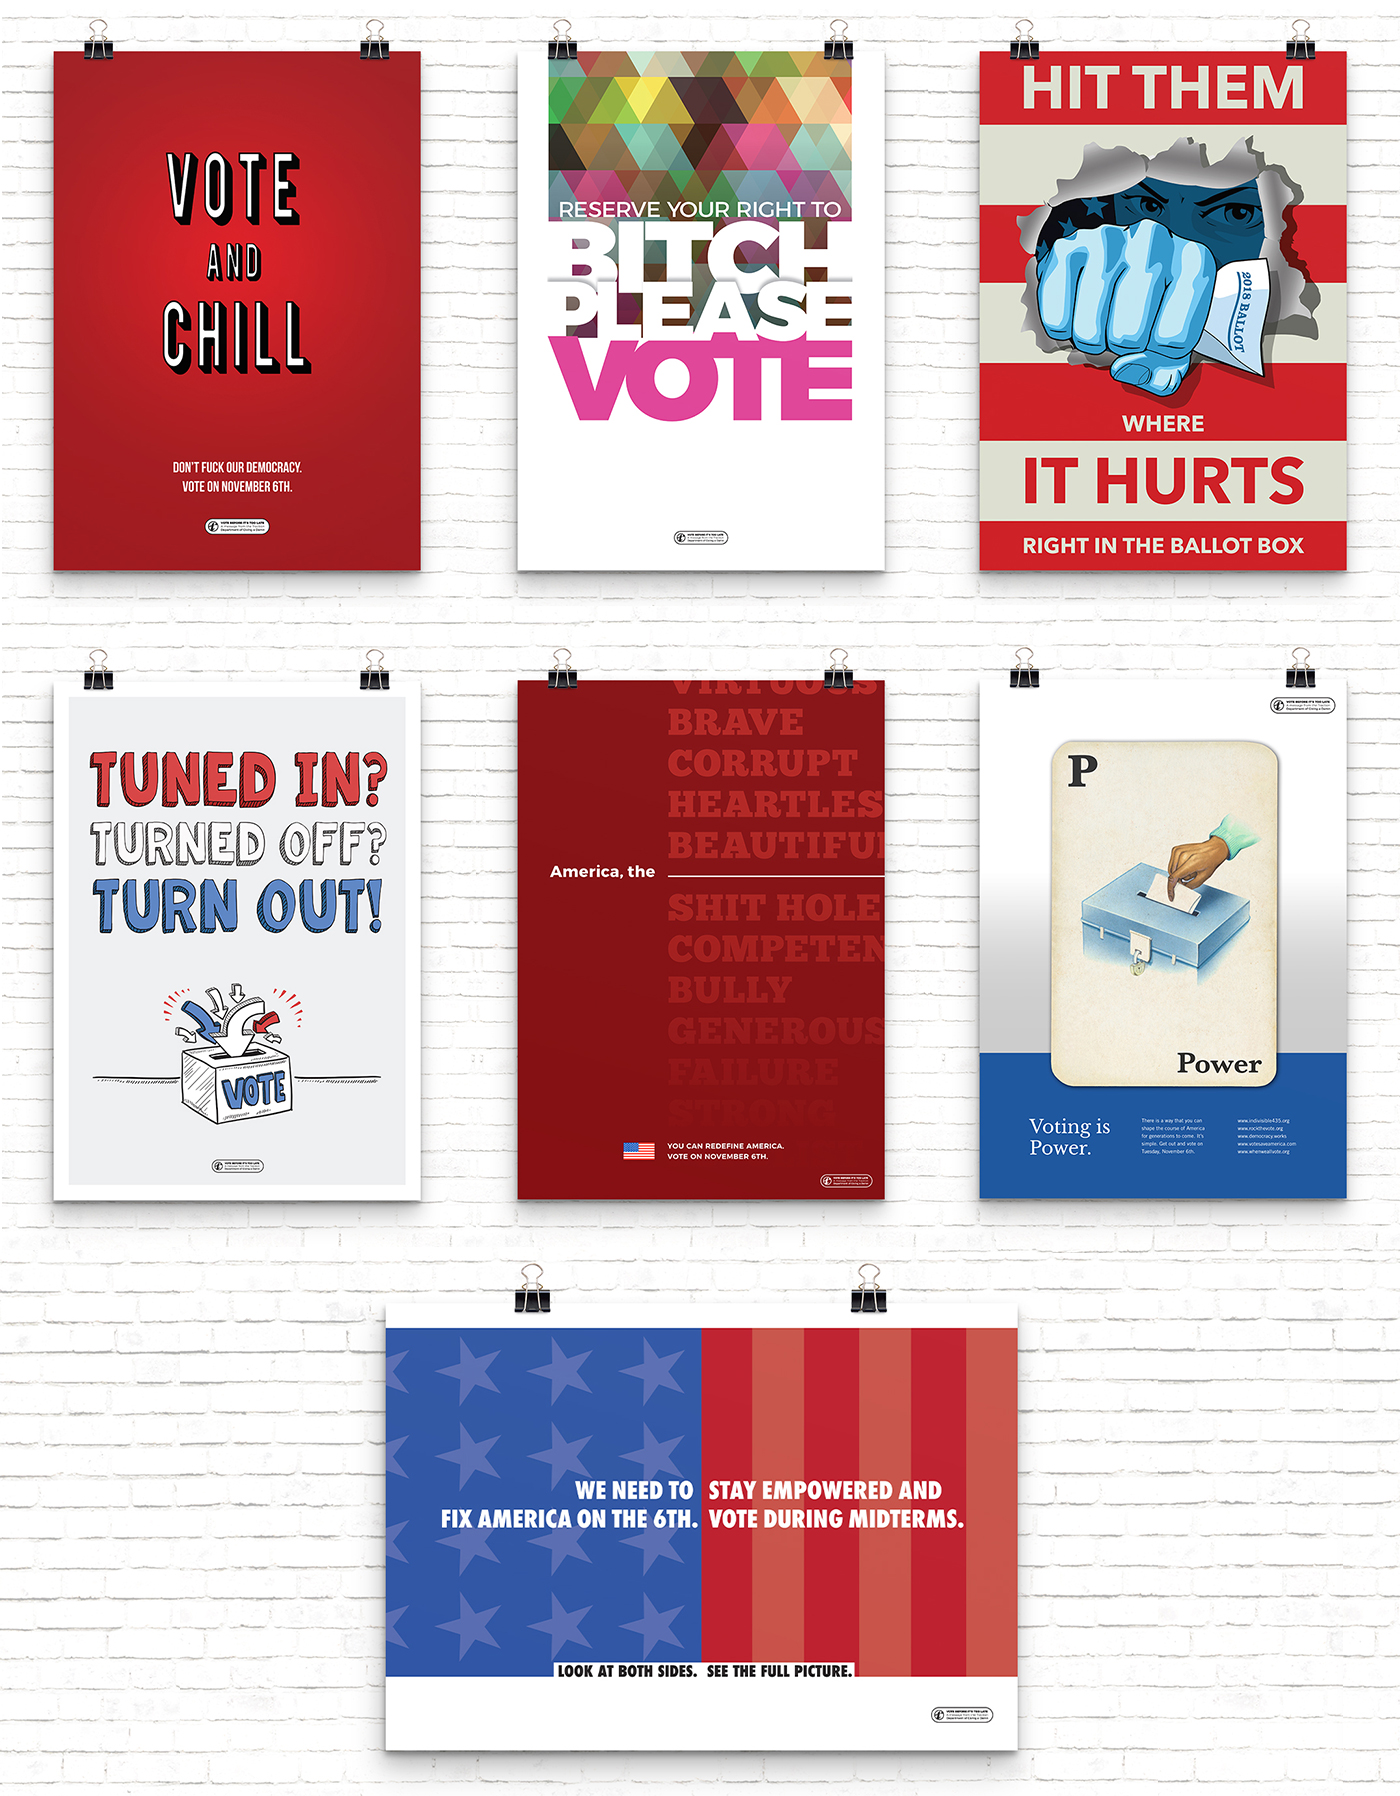 All voting posters